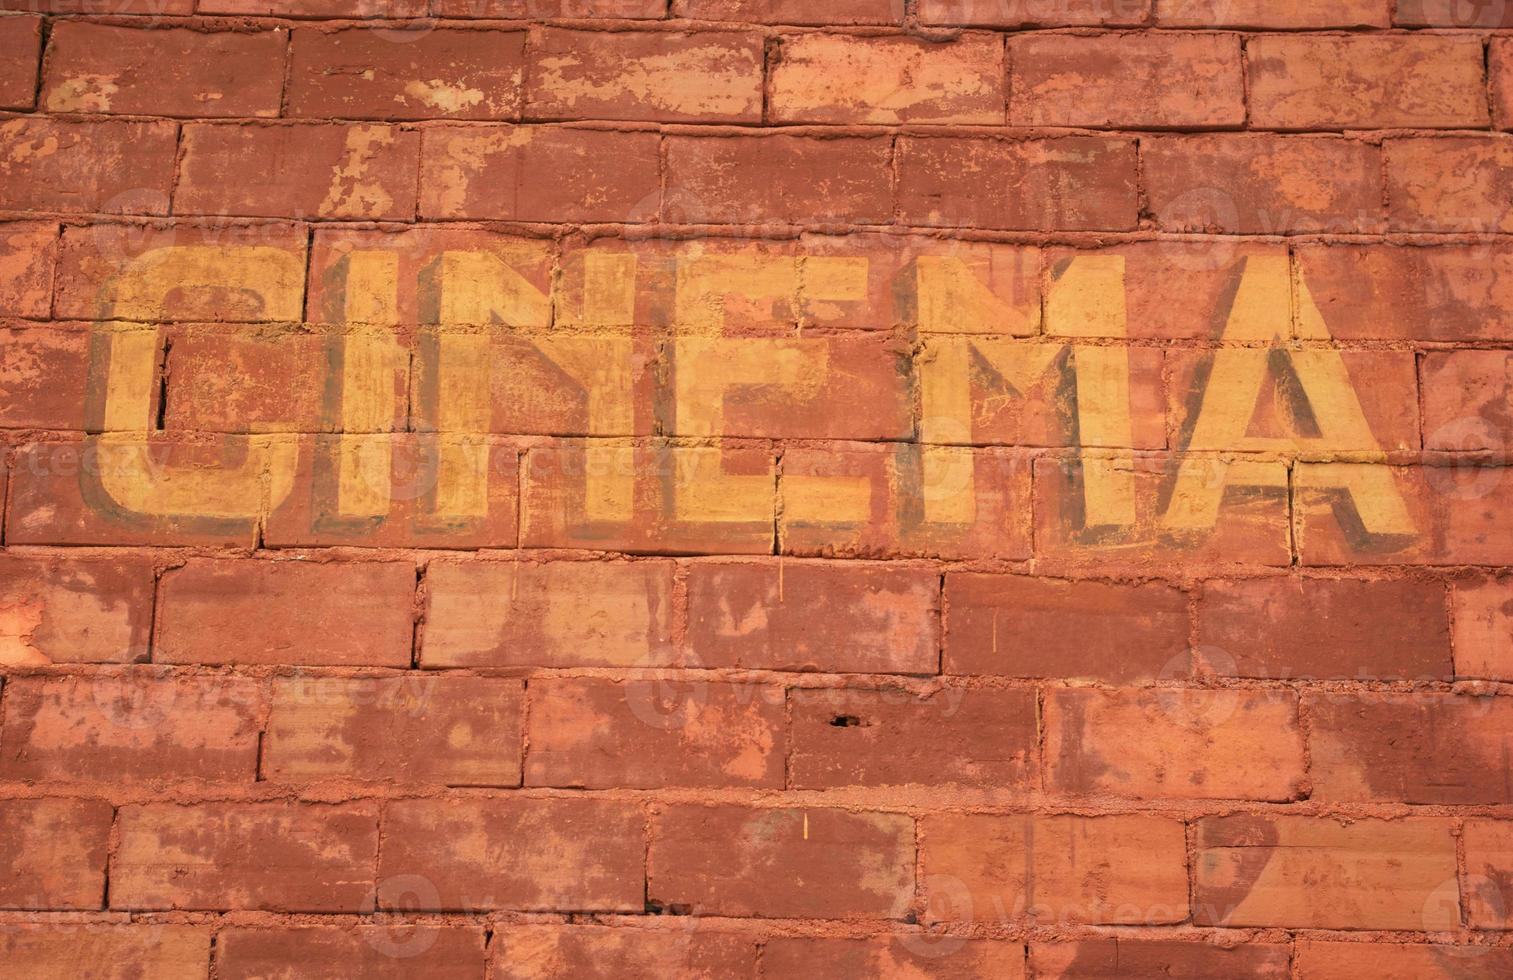 Text CINEMA painted on a brick wall photo